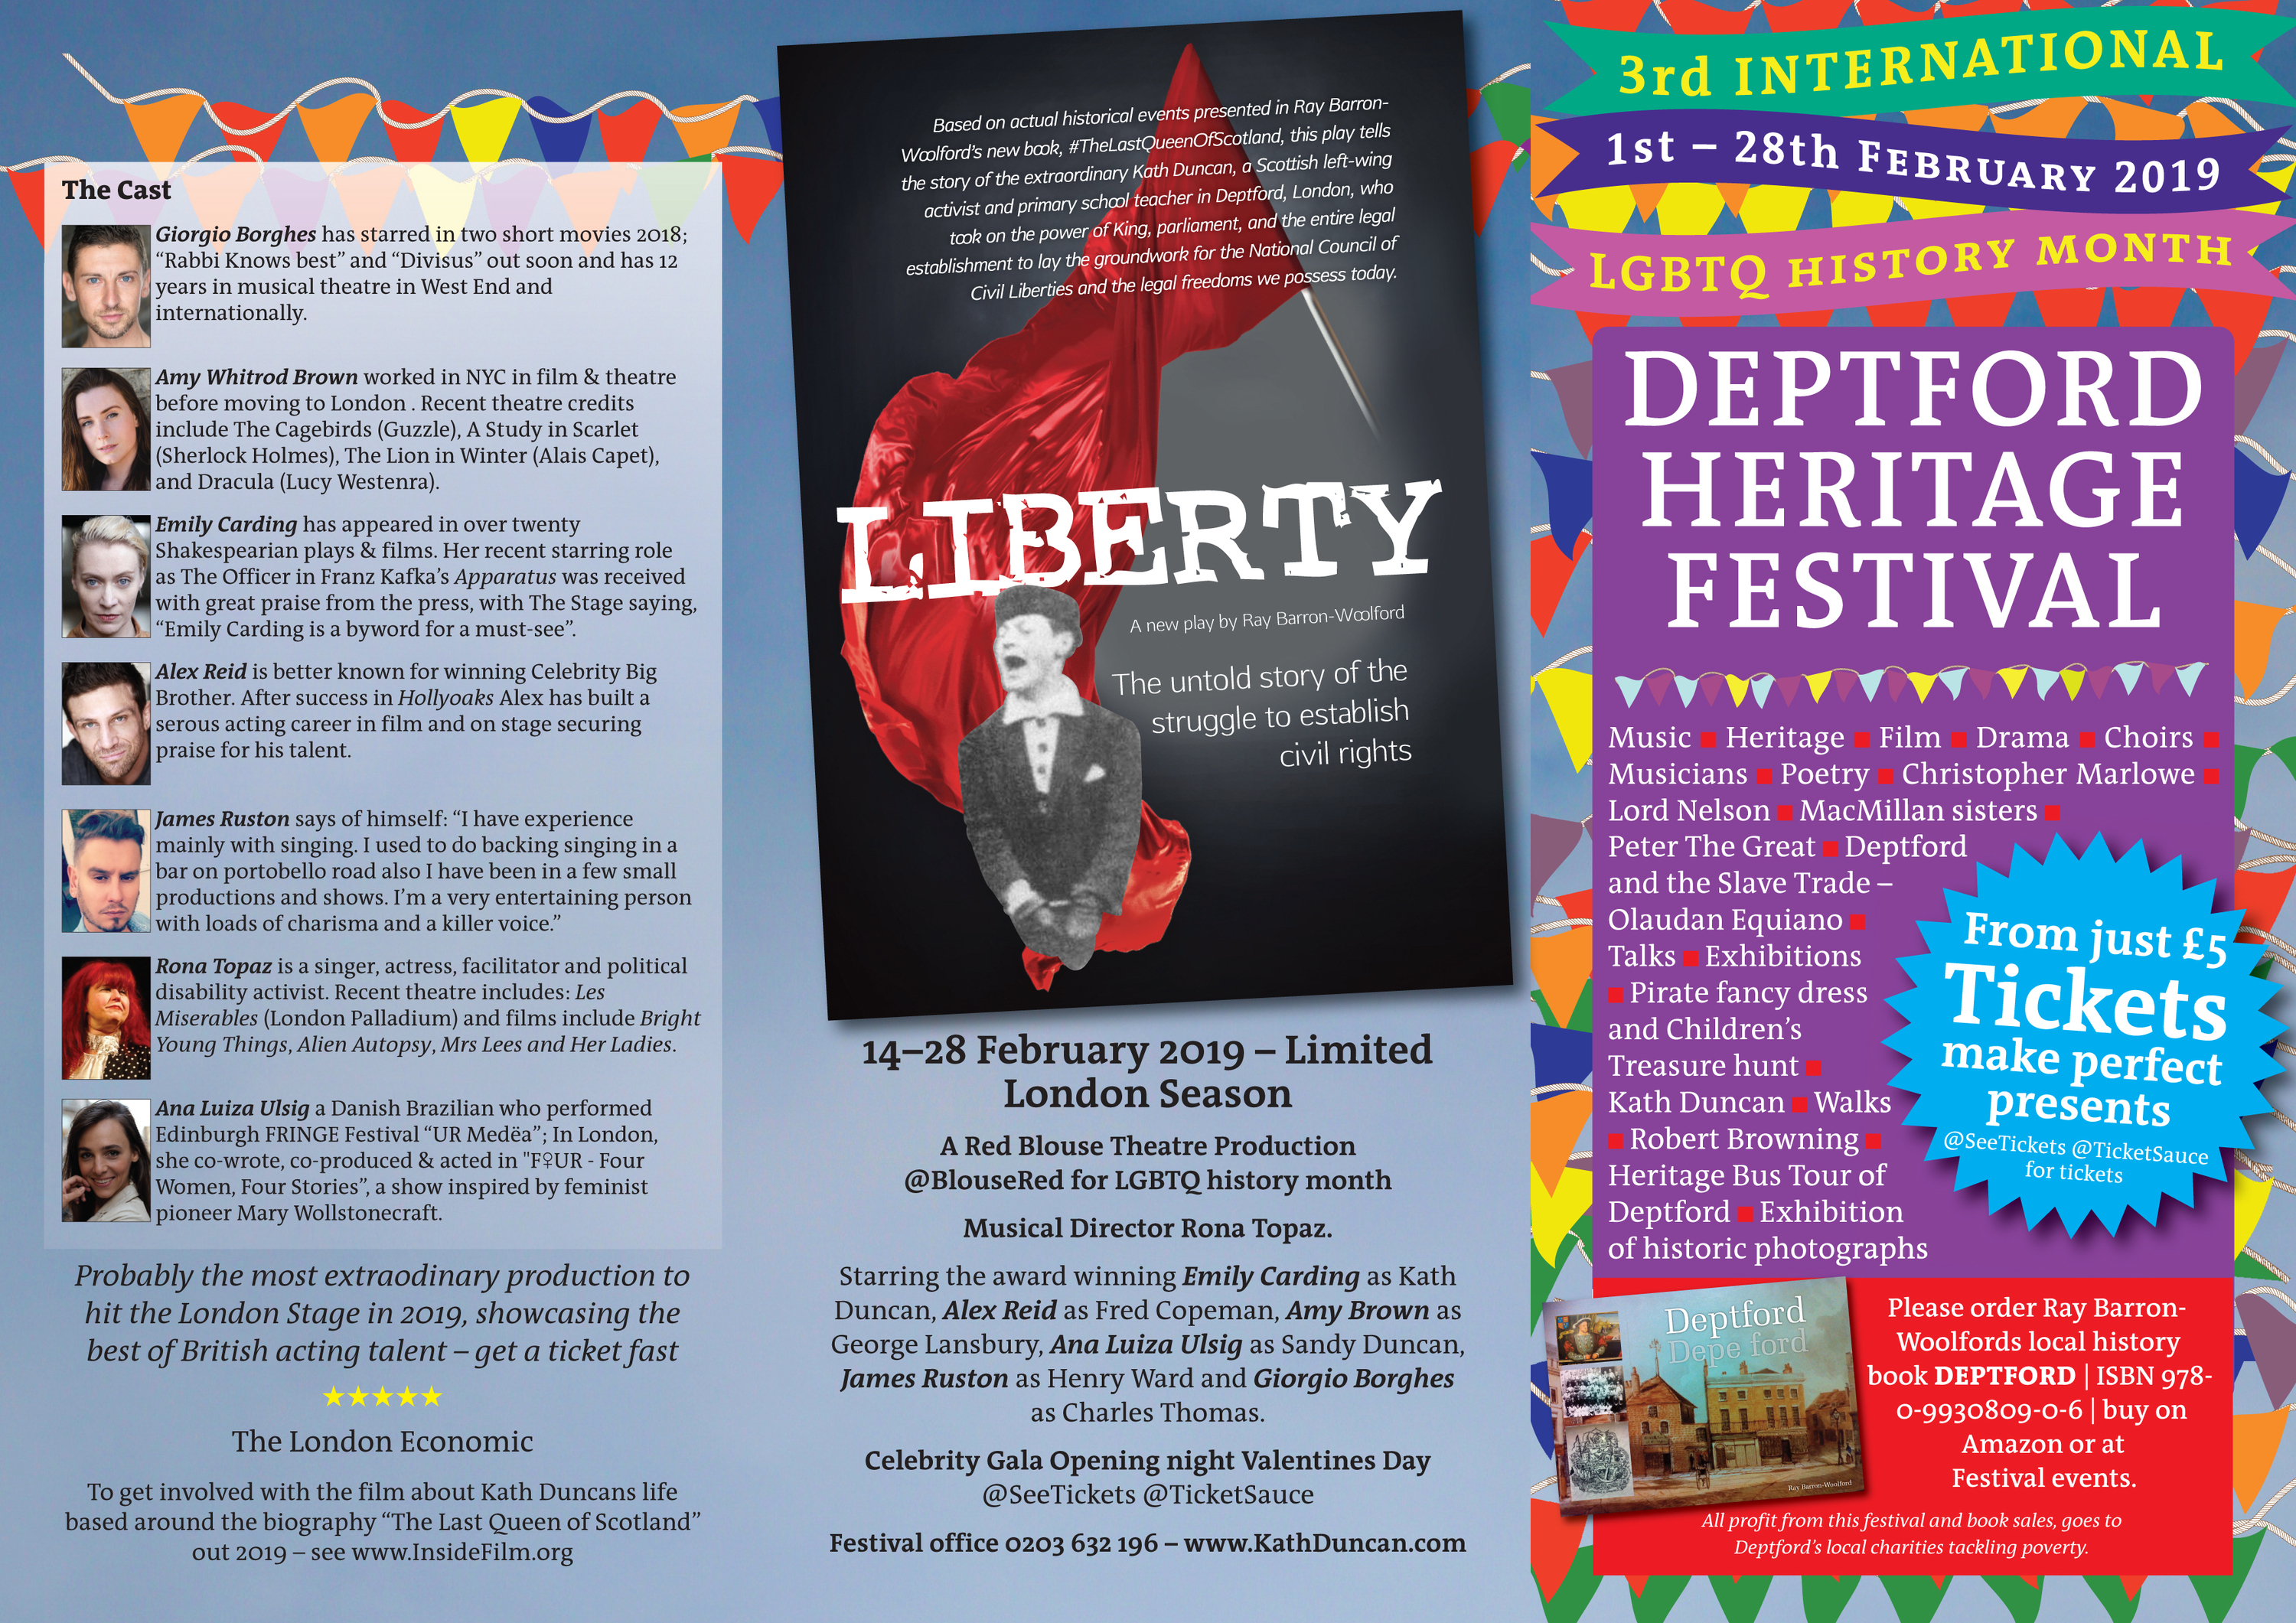 Deptford Heritage Festival | Things to do in London